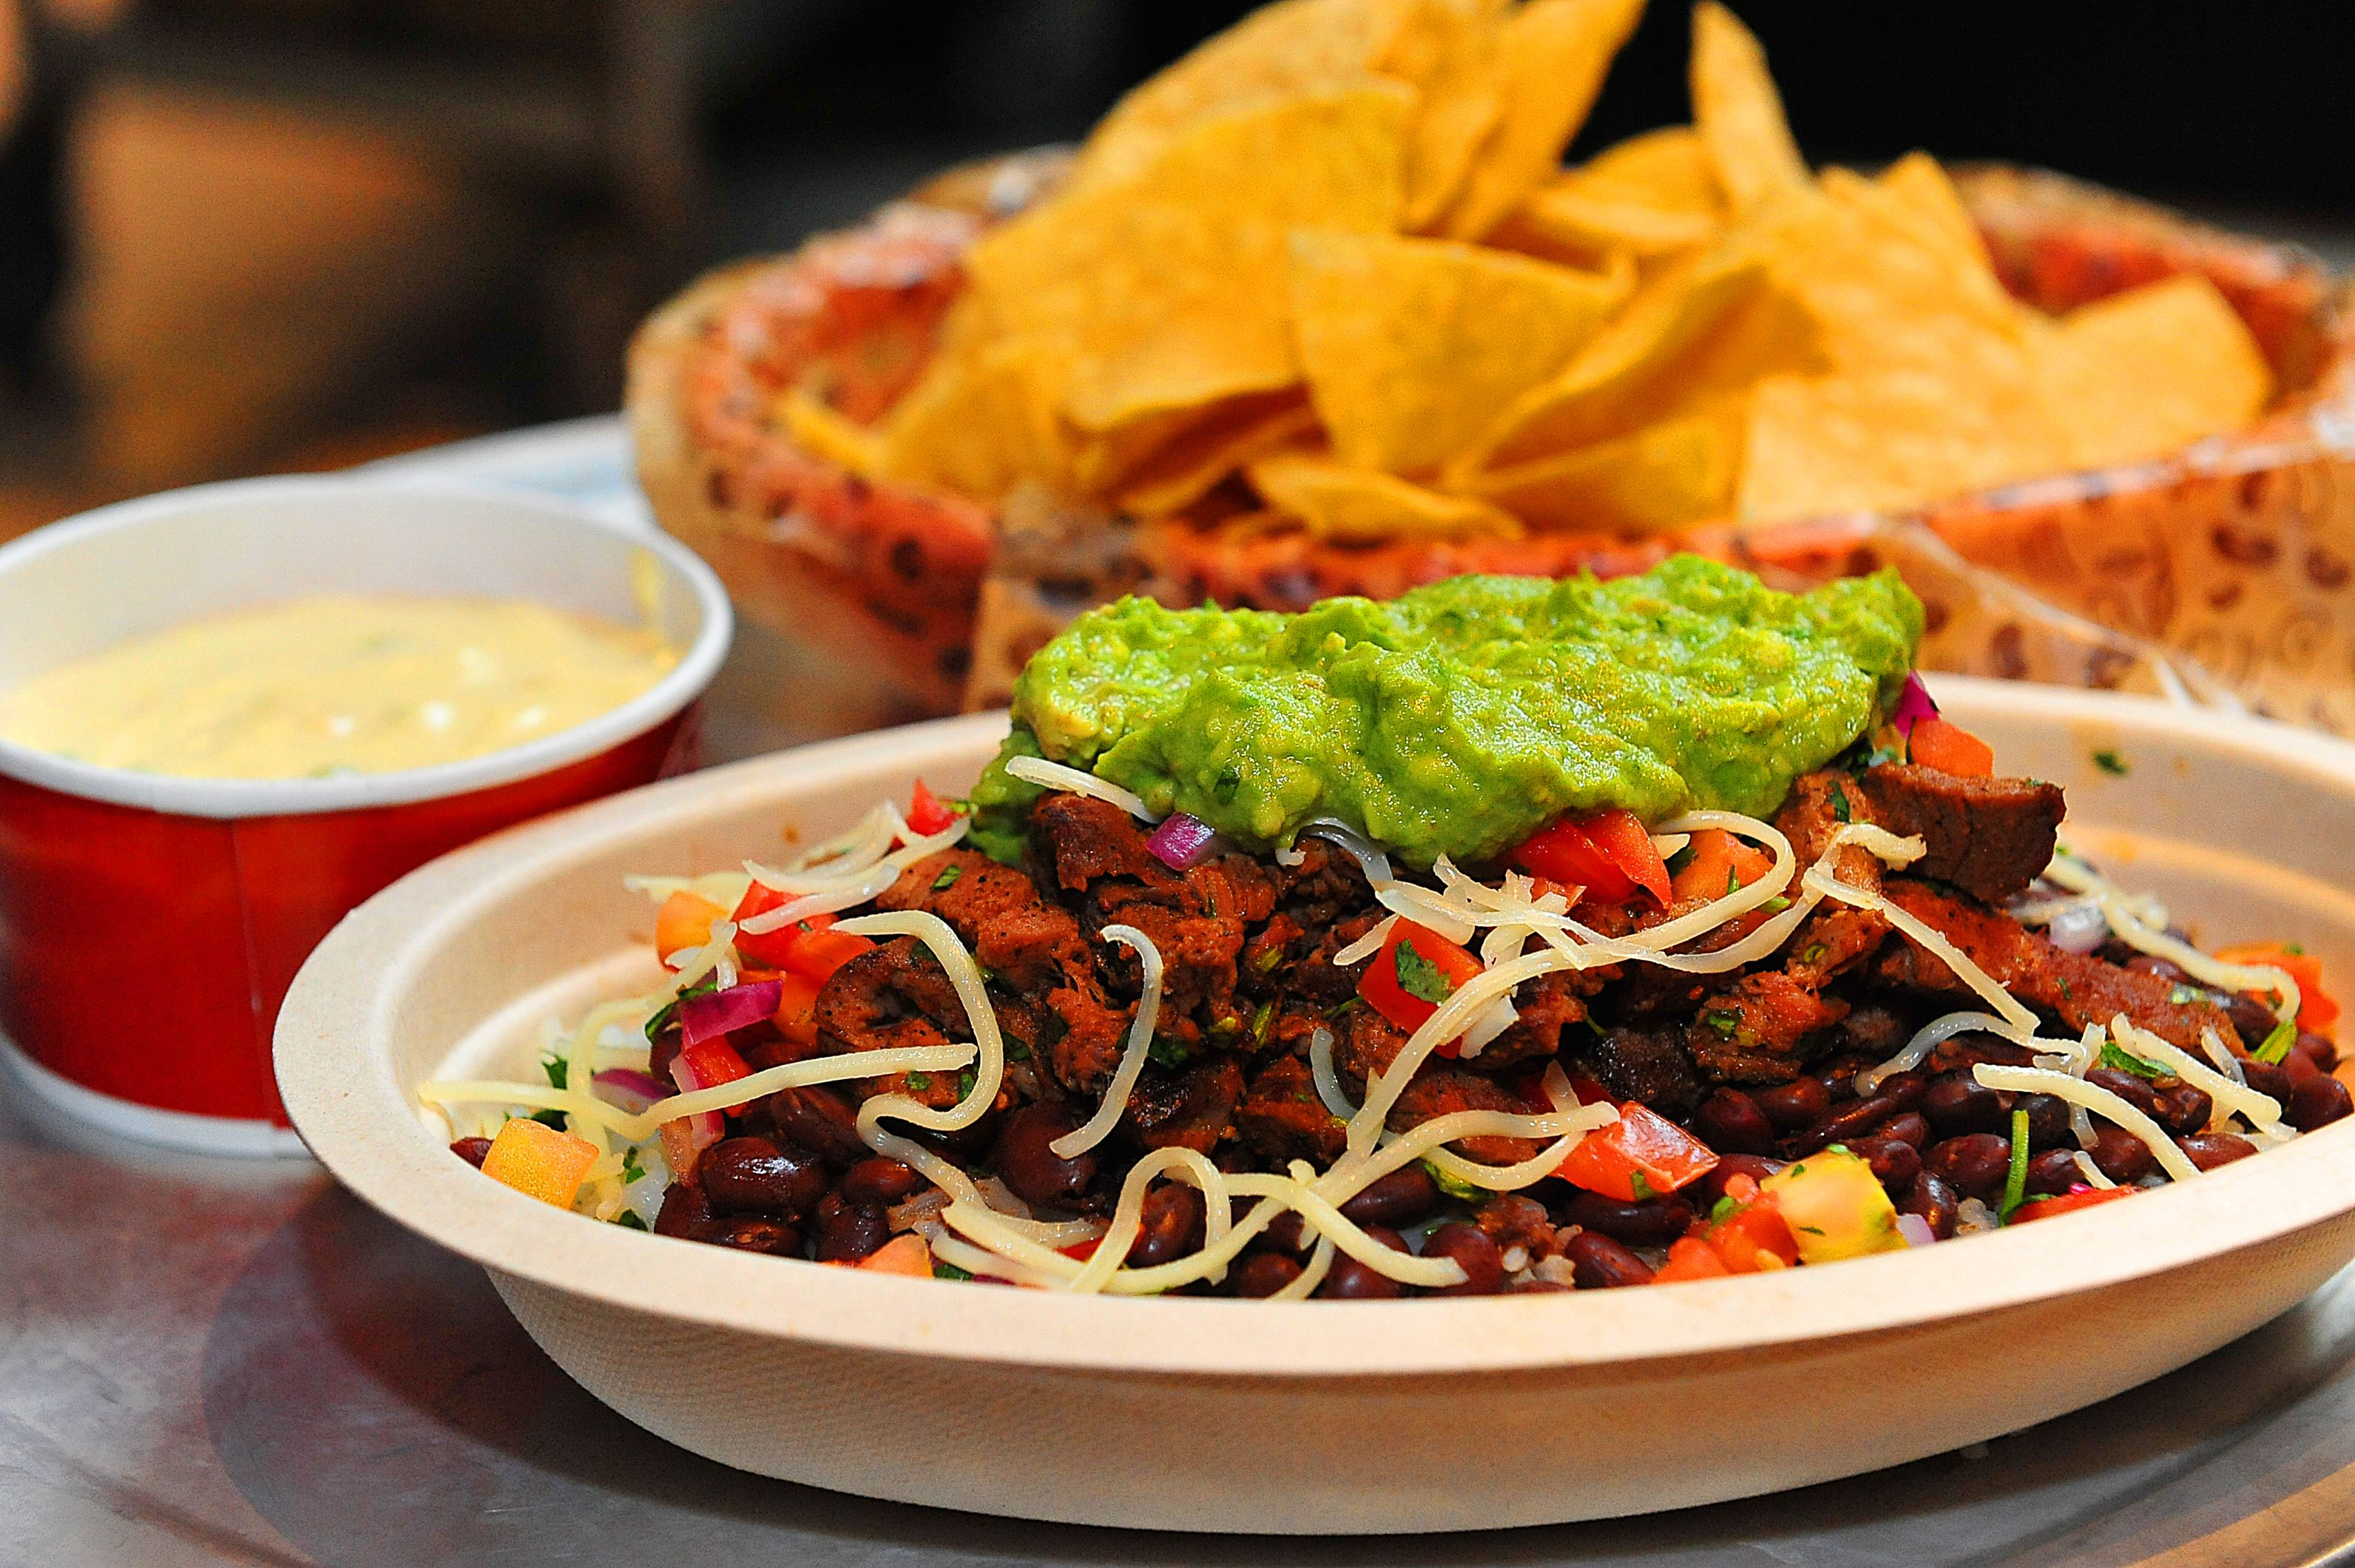 Chipotle Is Introducing Carne Asada Steak So Your Burrito Bowl Order Will Never Be The Same Again